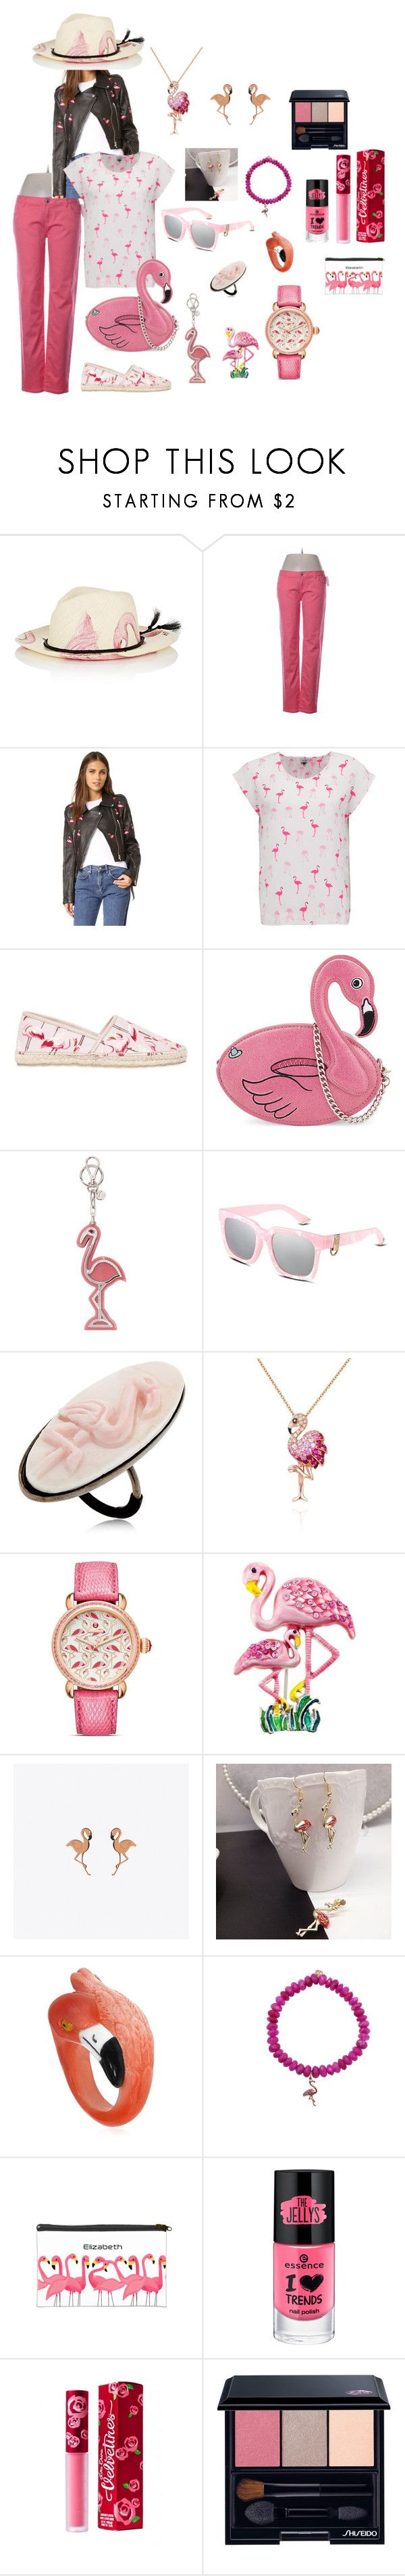 """""""Pink Flamingo"""" by michi-donaho on Polyvore featuring Ibo-Maraca, Celebrity Pink, JN by JN LLOVET, Mercy Delta, RED Valentino, Skinnydip, Miu Miu, Anna e Alex, Effy Jewelry and Michele"""